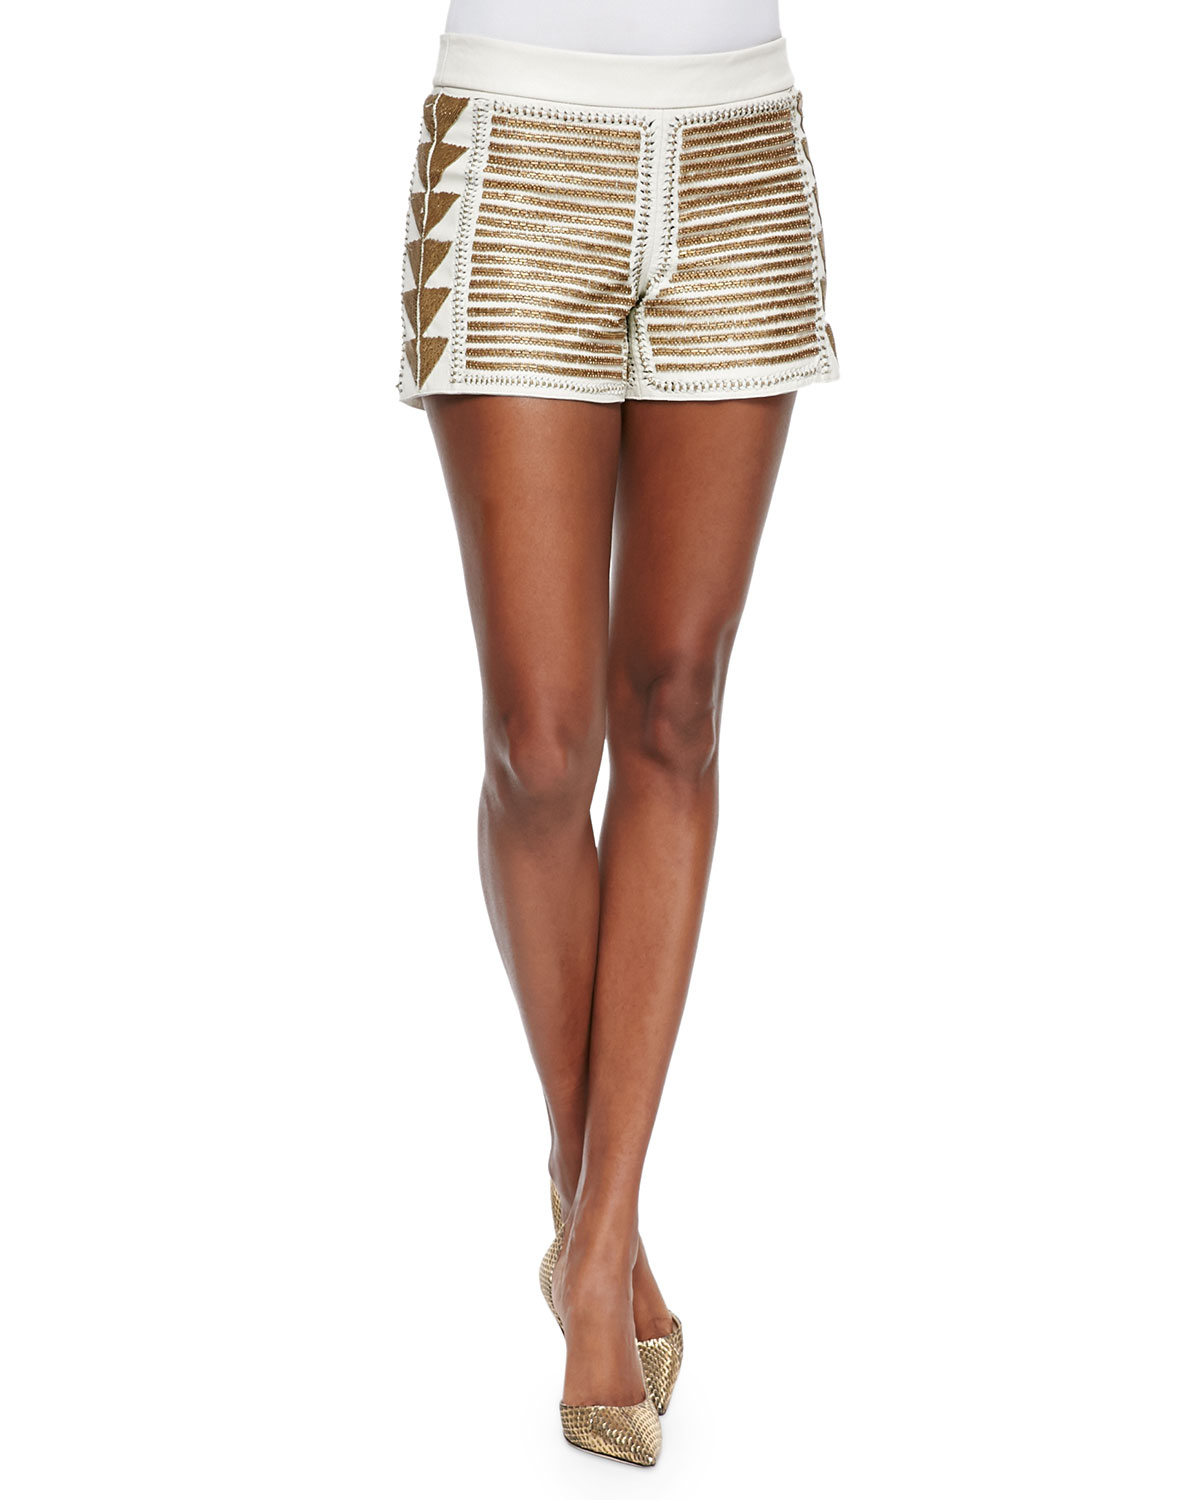 Alice   olivia Beaded Back-zip Leather Shorts in Metallic | Lyst